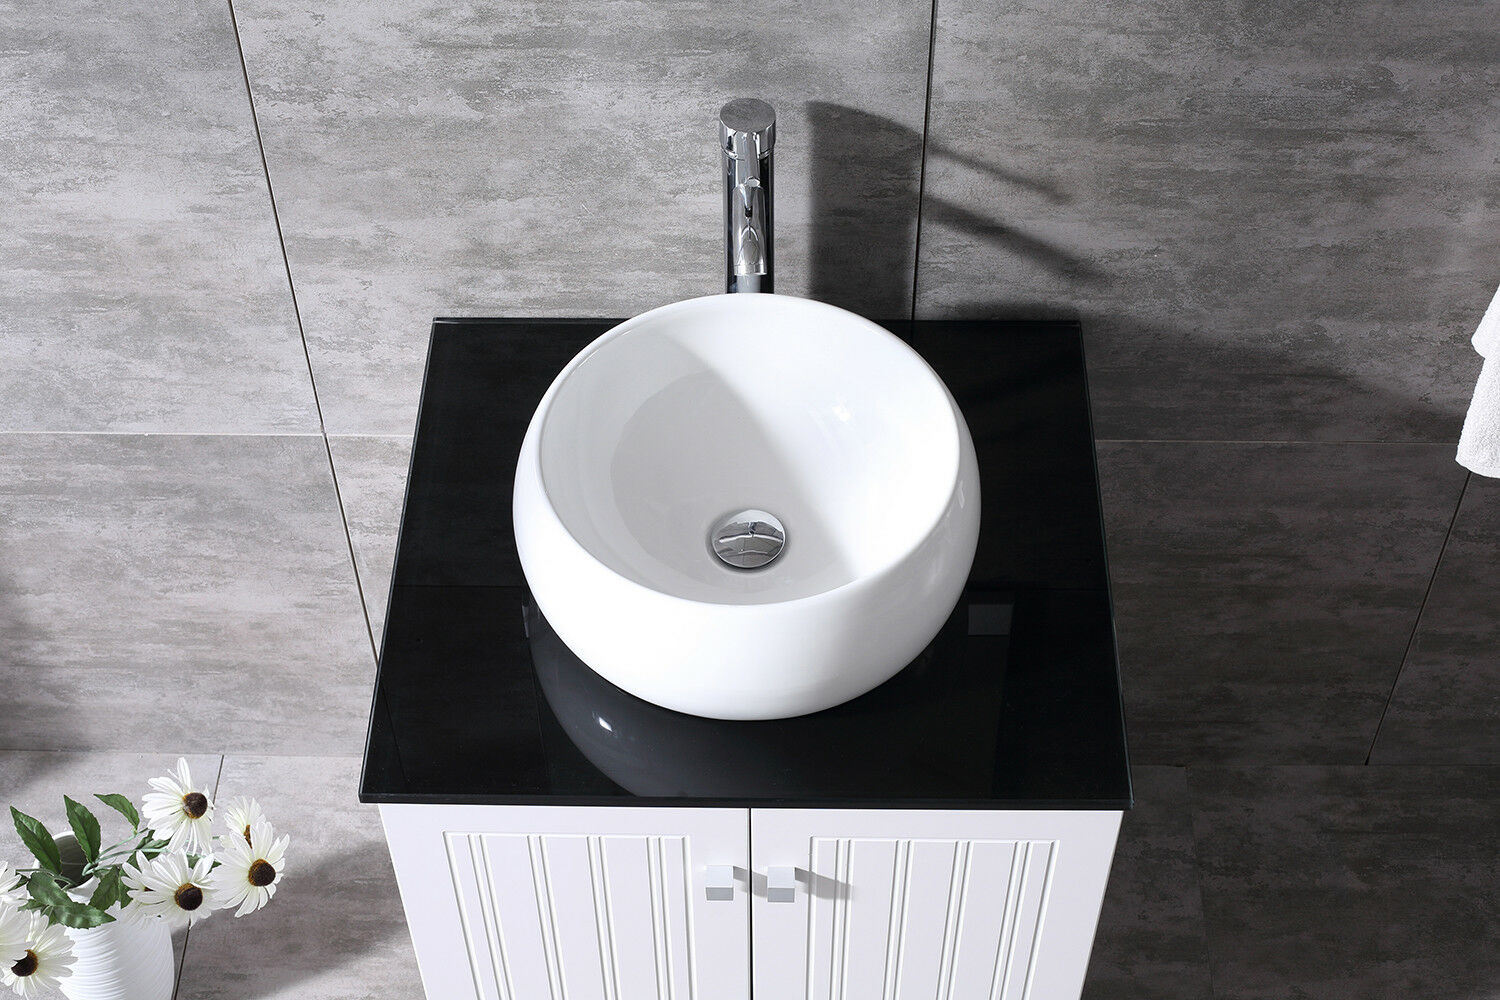 China Bathroom Vanity Pvc Cabinet 24inch Round Ceramic Vessel Sink Bowl W Mirror Set Photos Pictures Made In China Com